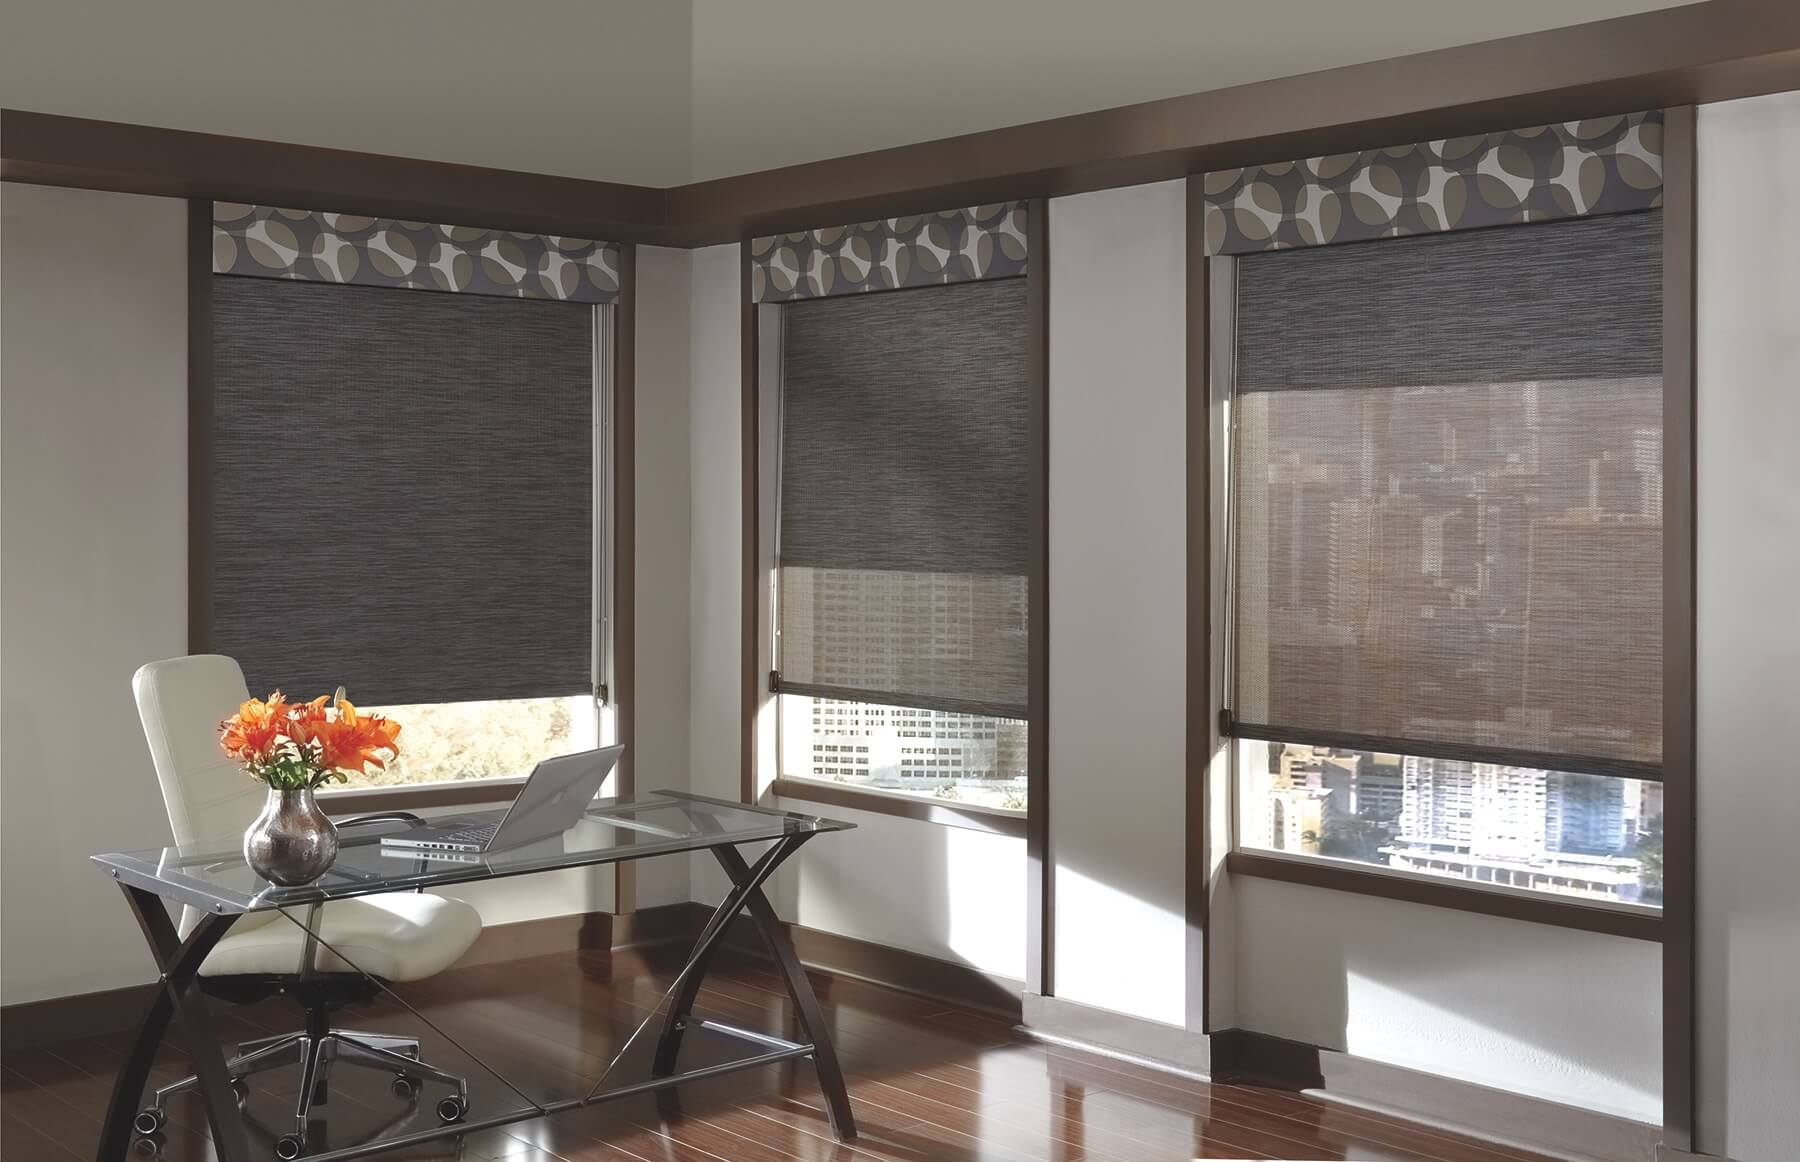 Designer Screen Shades with Duolite in home office